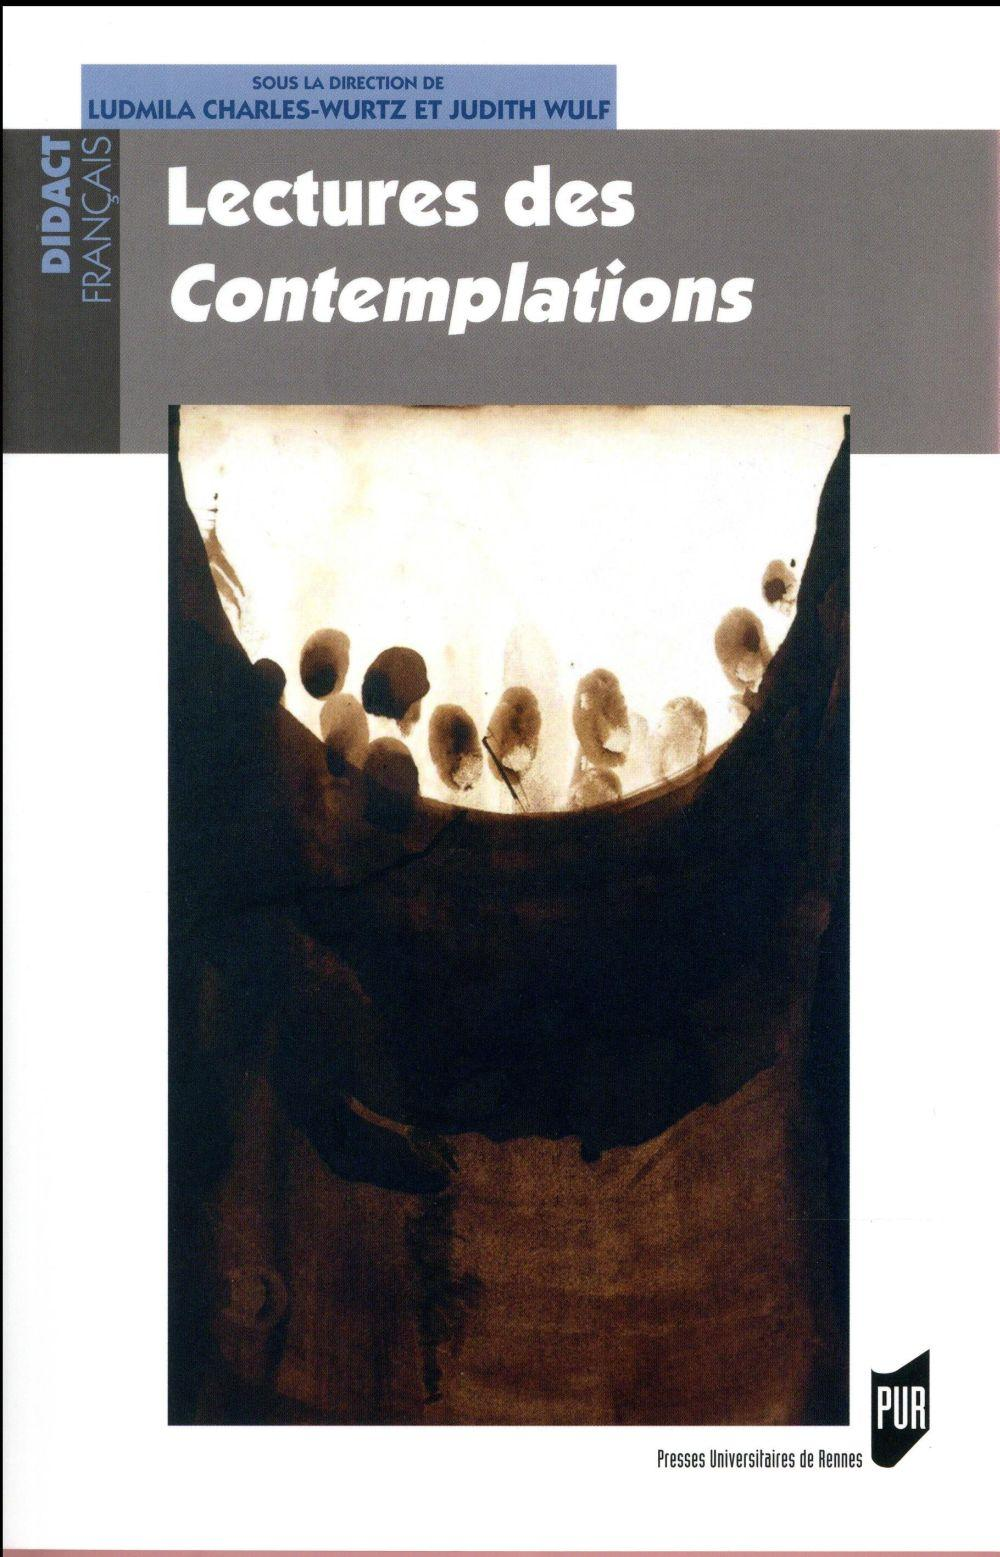 Lectures des Contemplations  - Ludmila Charles-Wurtz  - Judith Wulf